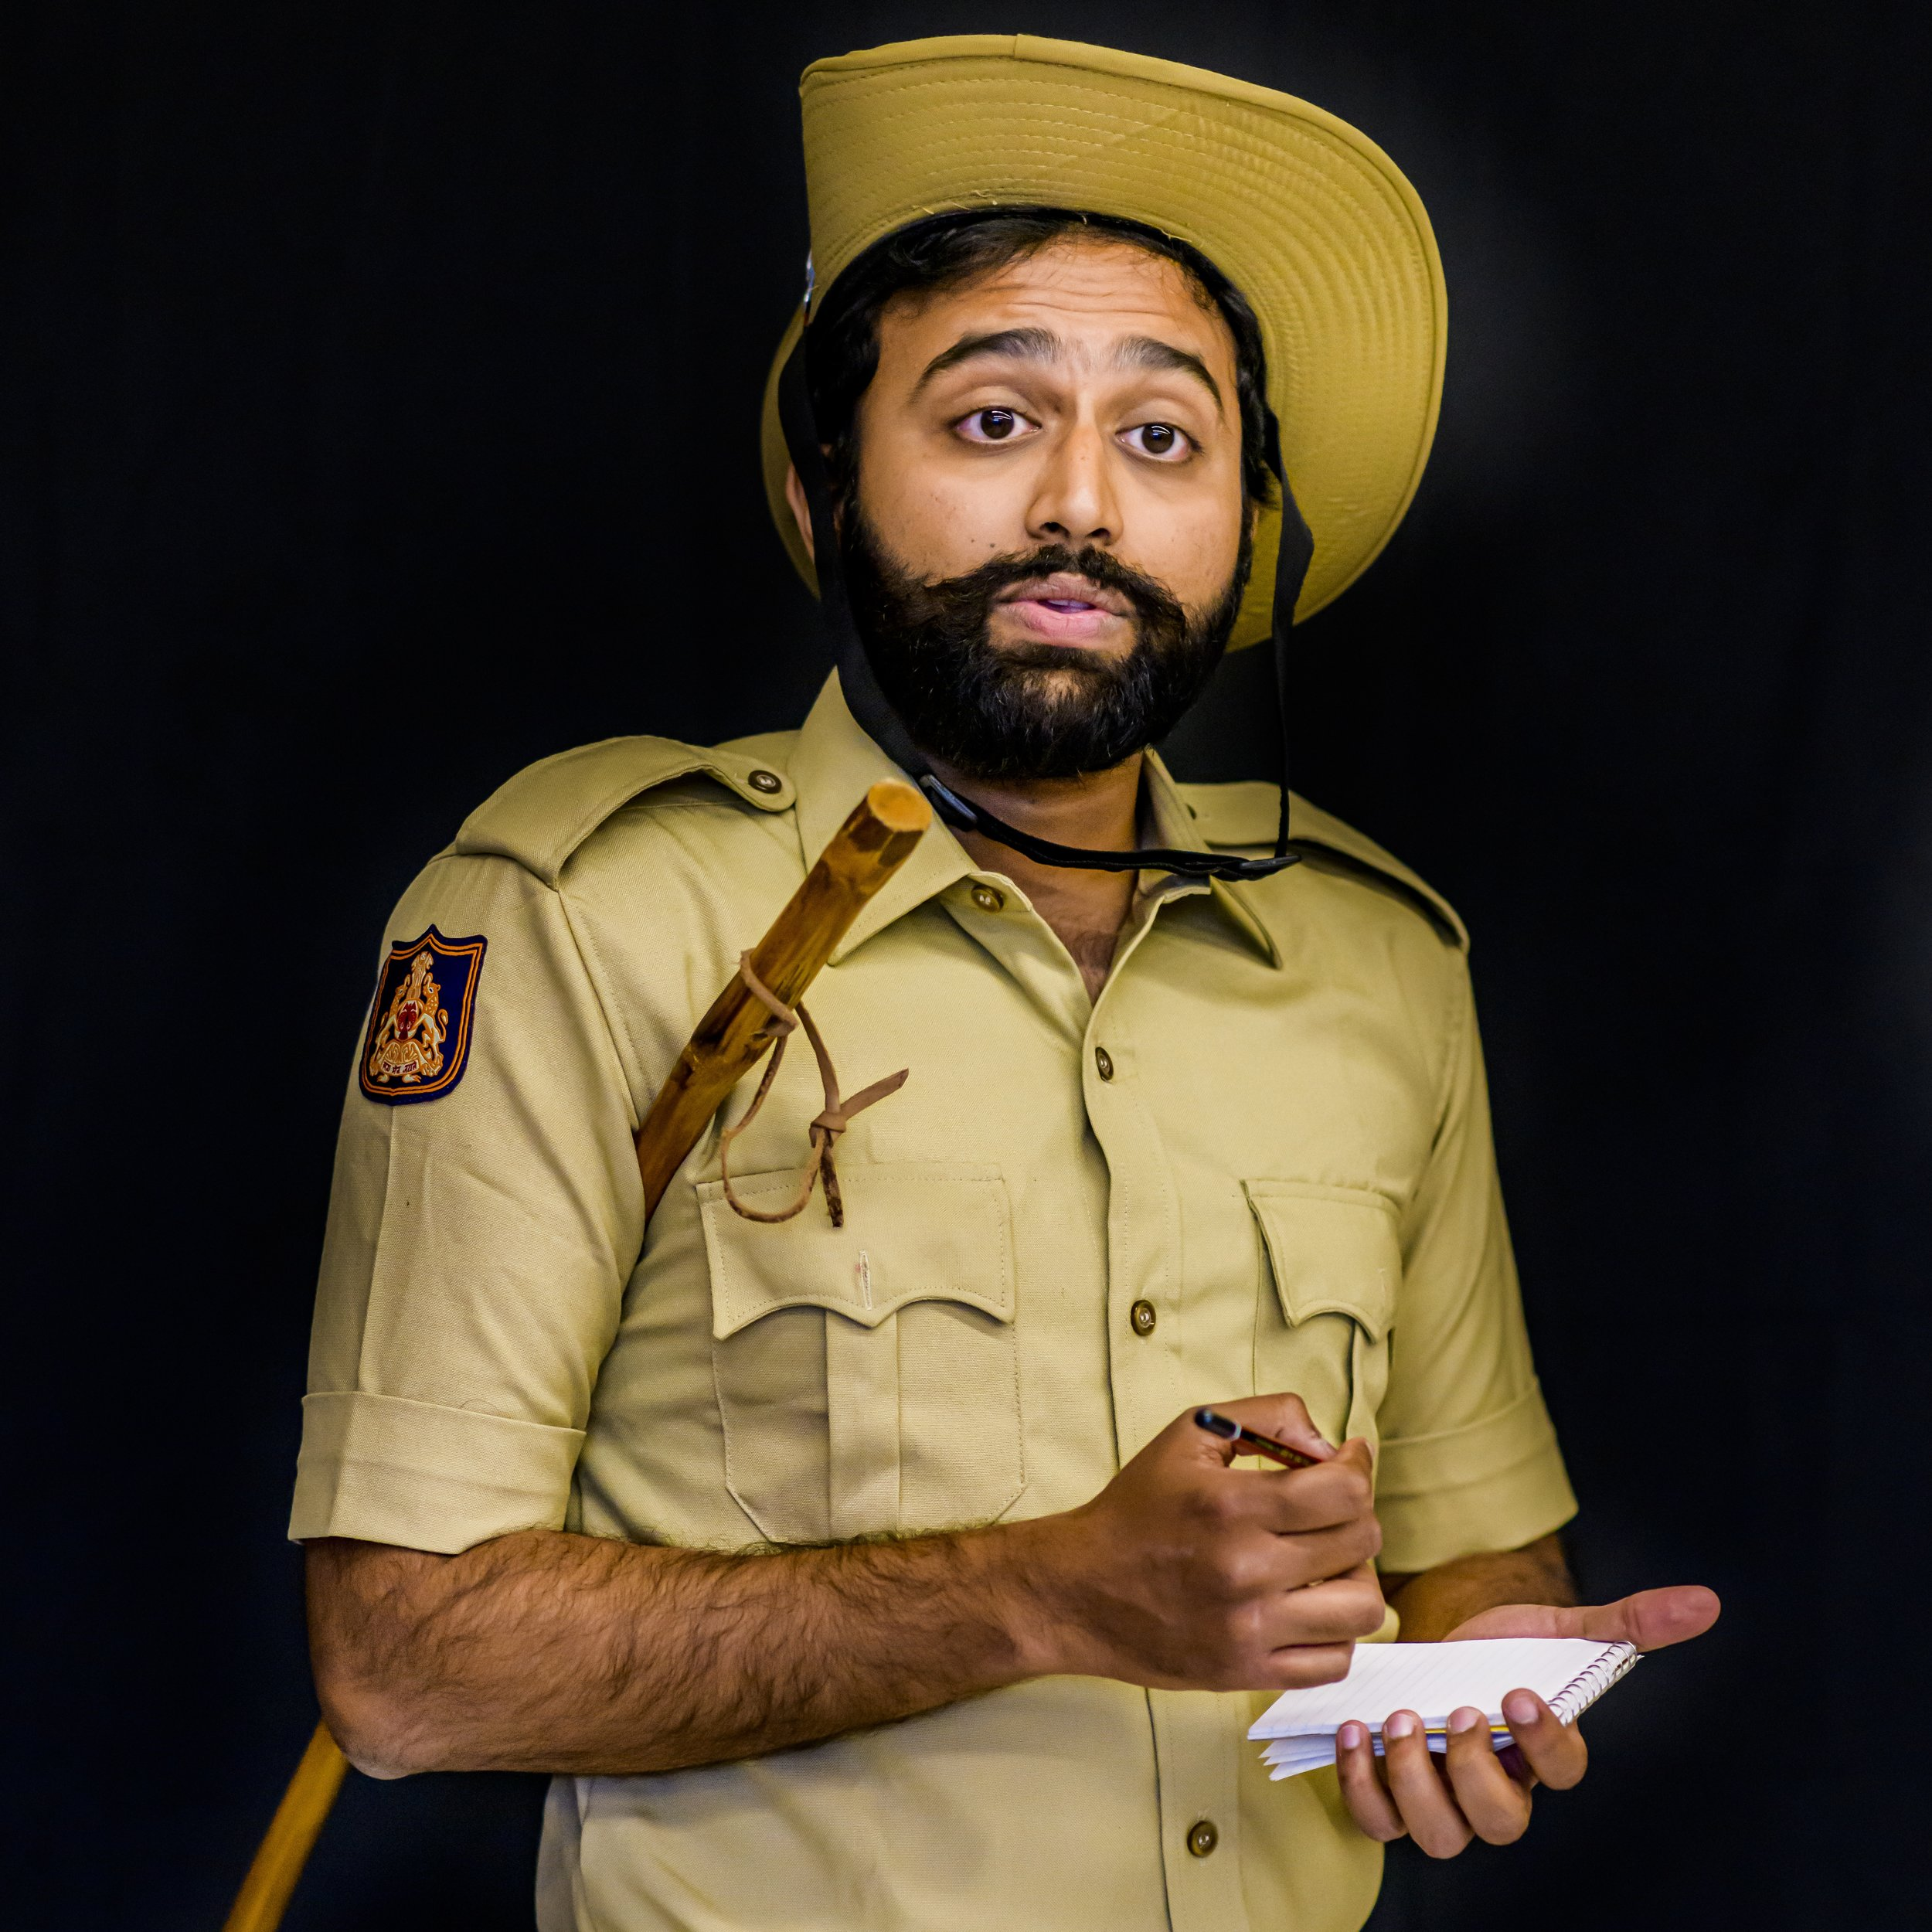 Constable - Relaxed. Only slightly competent. Typical policeman.Played by Kartic Bhargav